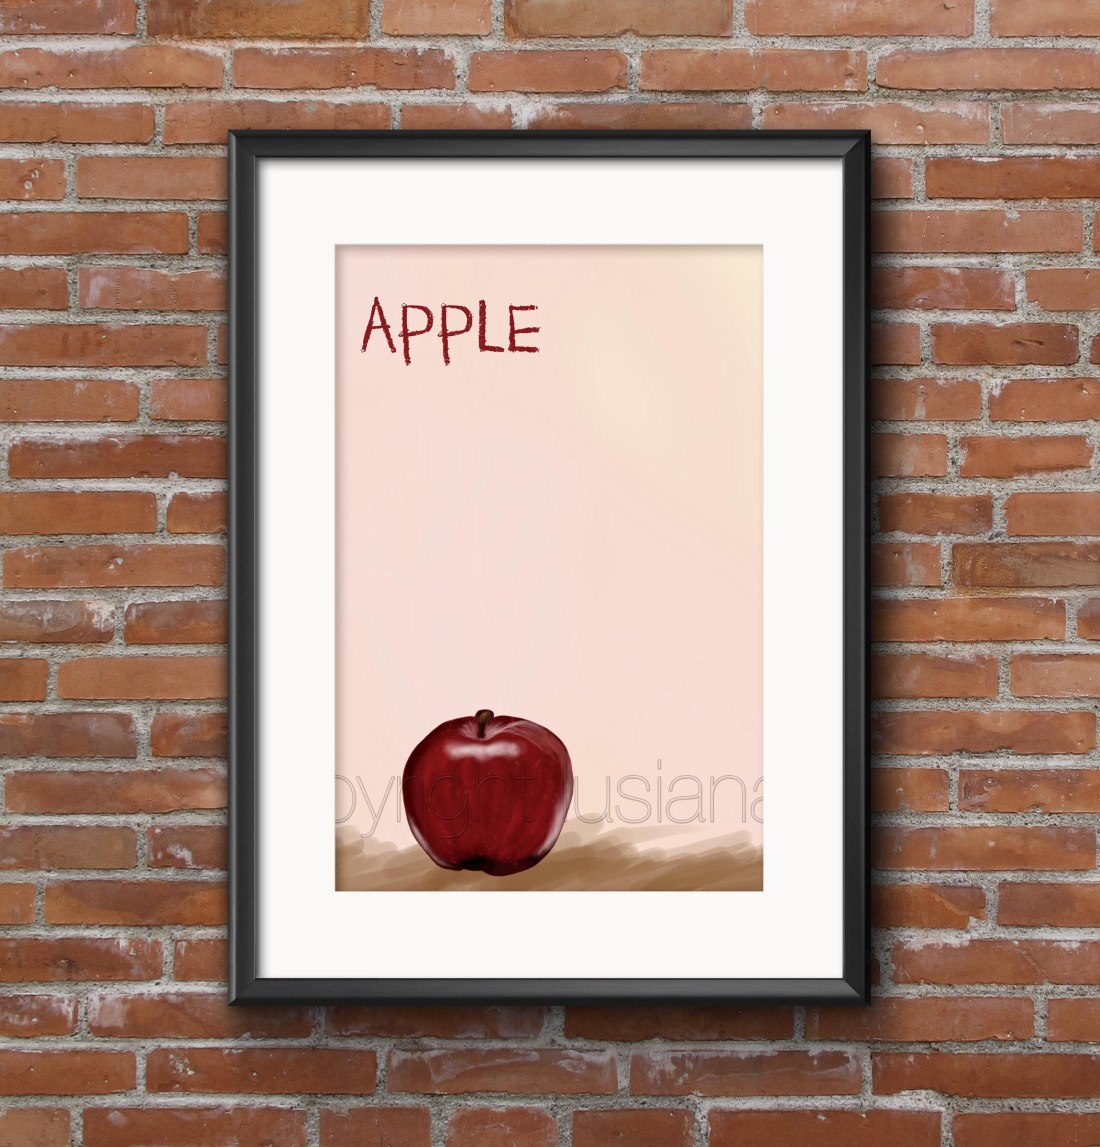 apple.copyright.lusiana